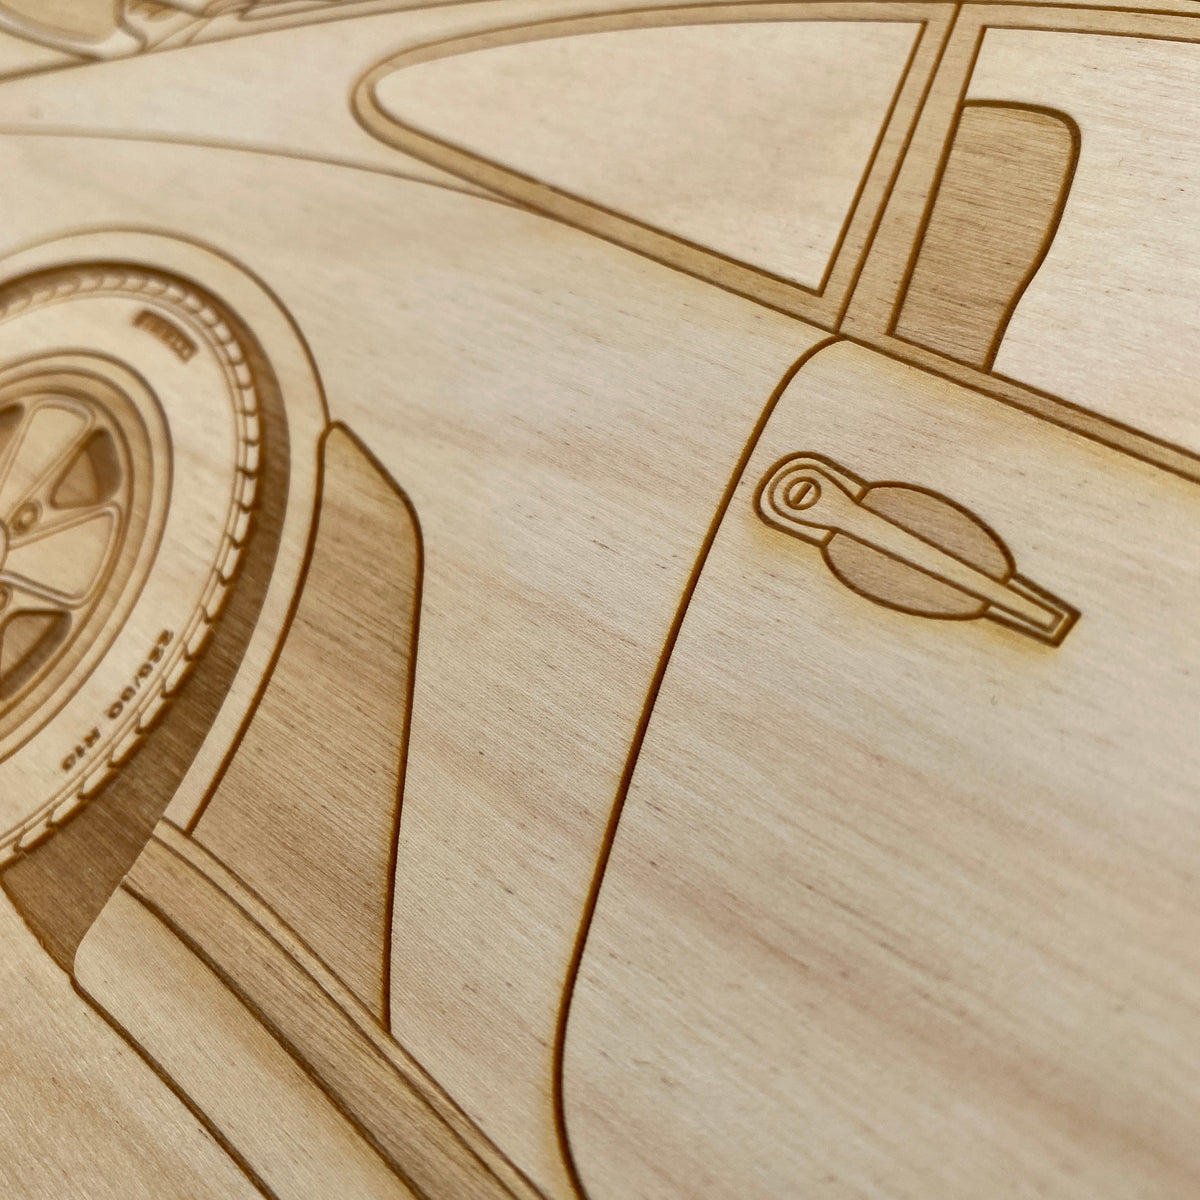 Porsche 930 Turbo Framed Wood Engraved Artwork - Lugcraft